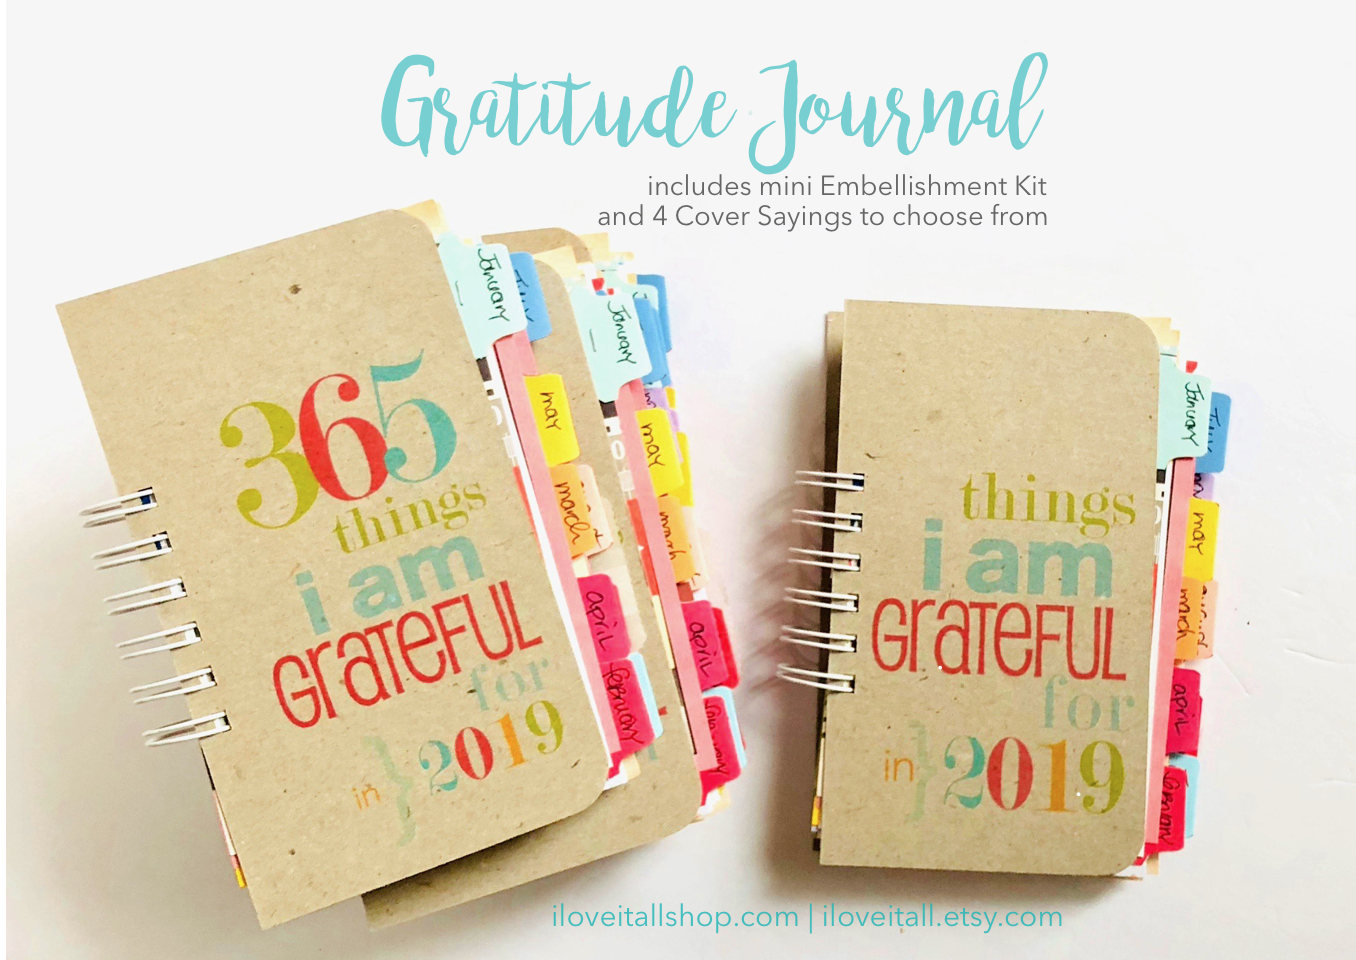 #journal #gratitude journal #happiness #joyful #grateful #gratitude #gratitude attitude #faith #blessings